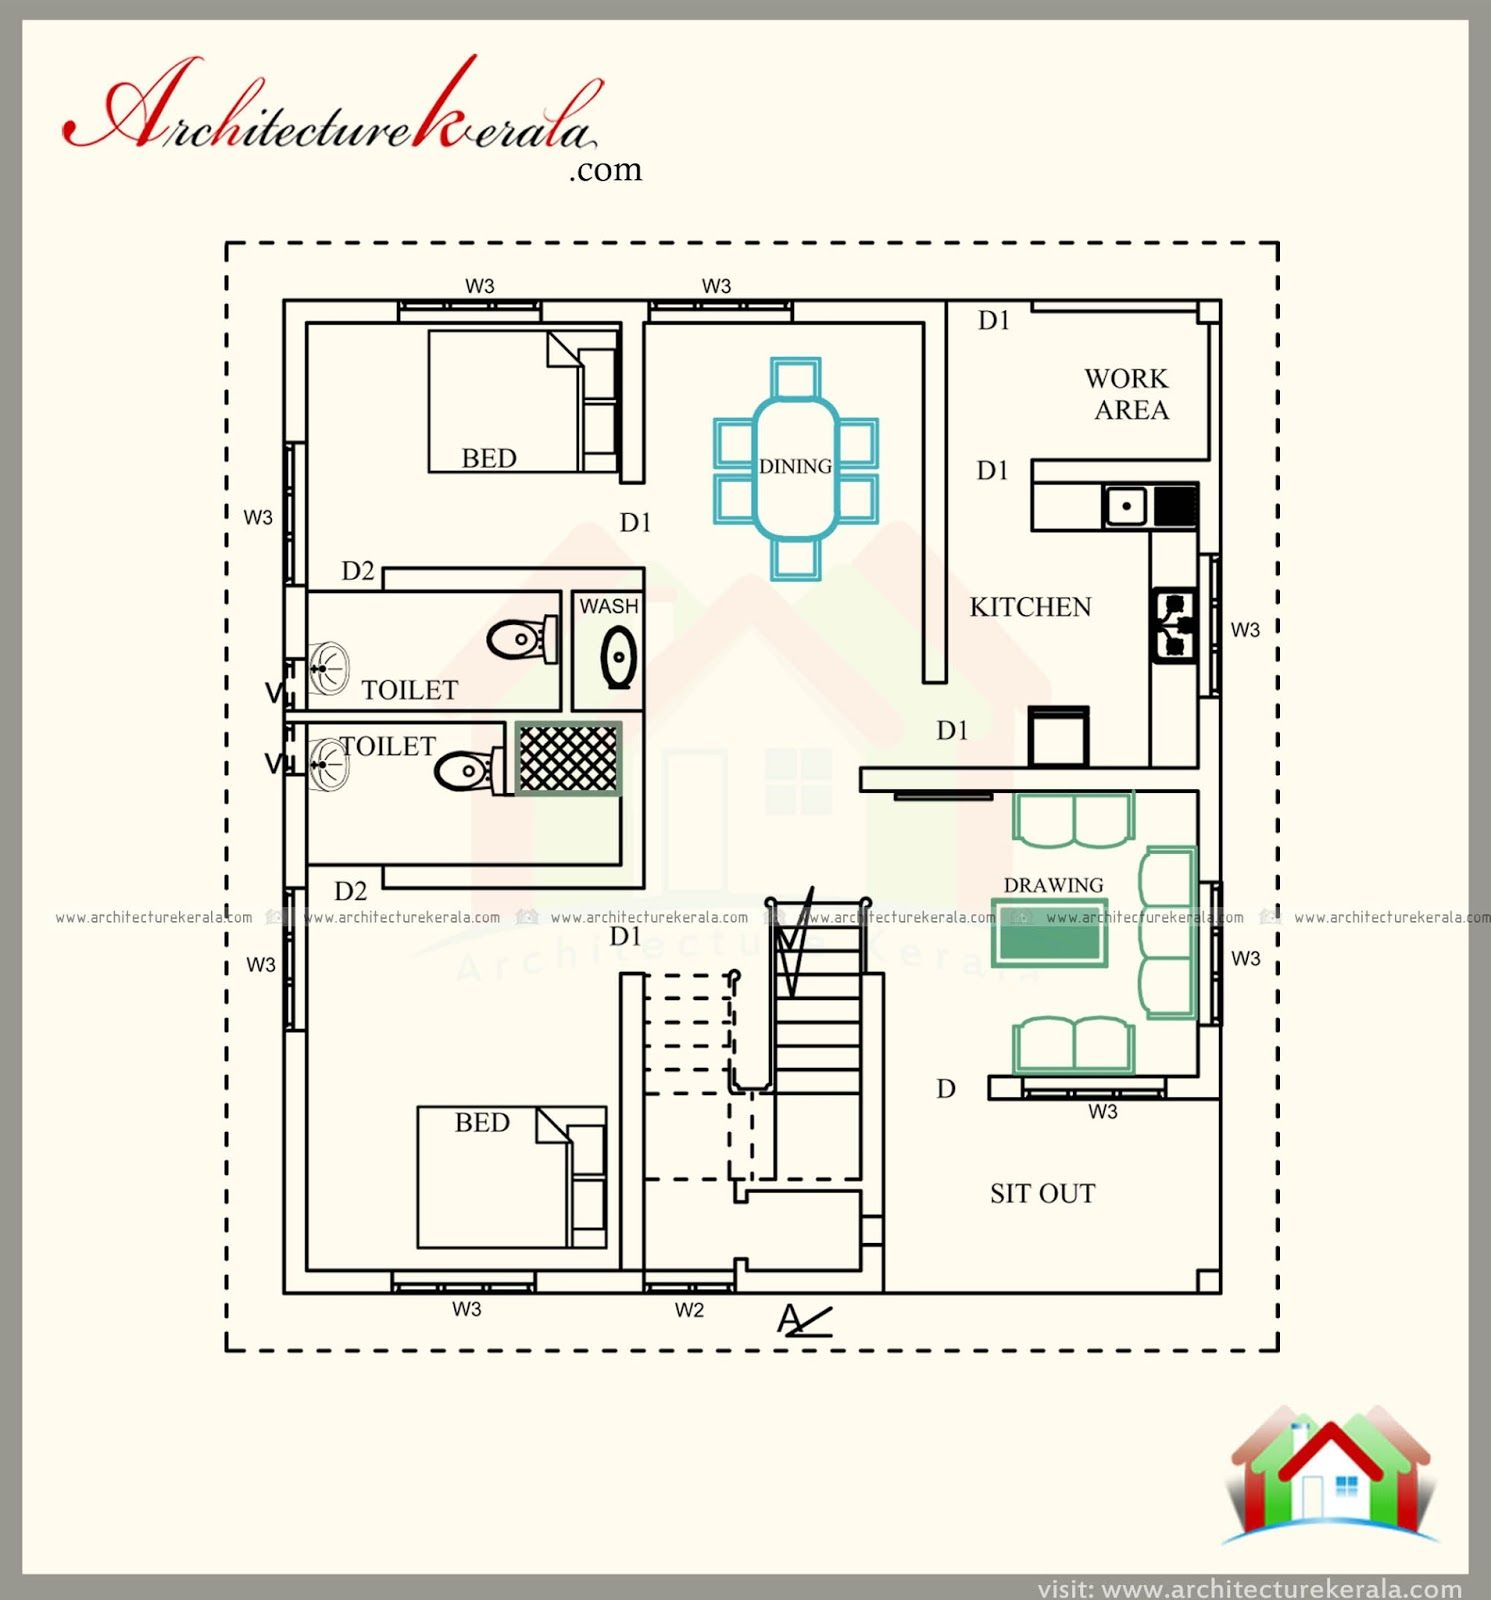 1700 Sq Ft House Plan 4 Bed Room With Attached Bathroom Living And Dining Separate Kitchen With Work Area New Cont Indian House Plans House Plans How To Plan